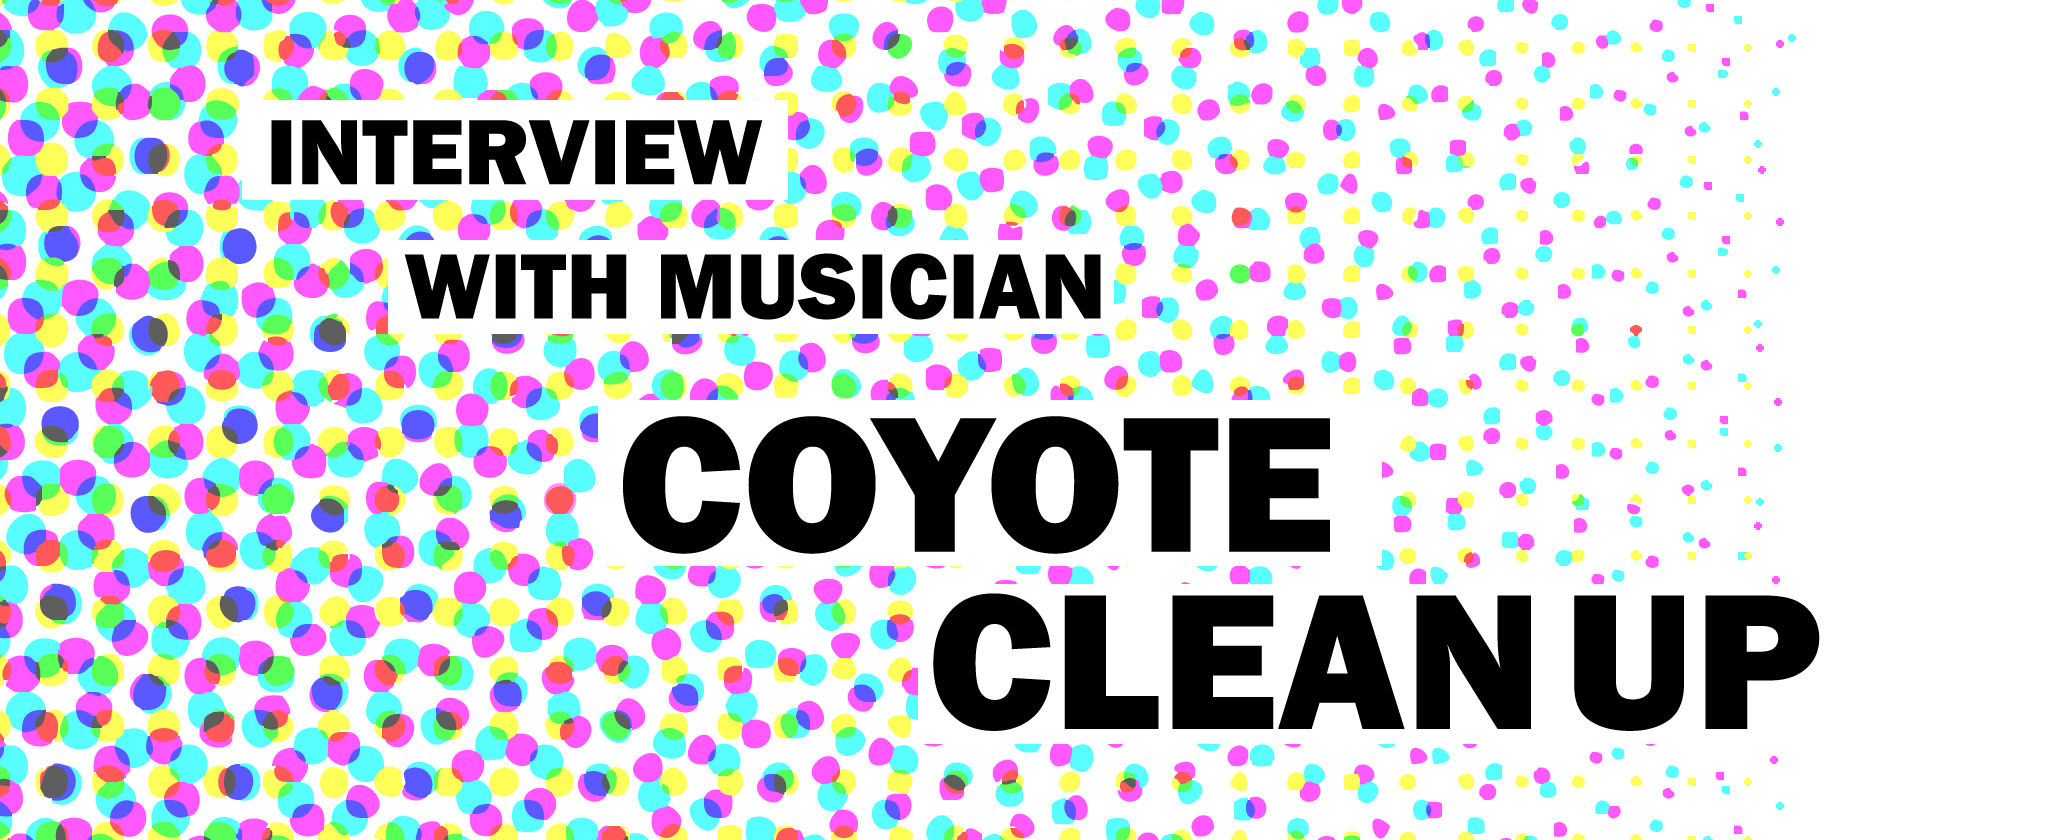 Coyote Cleanup